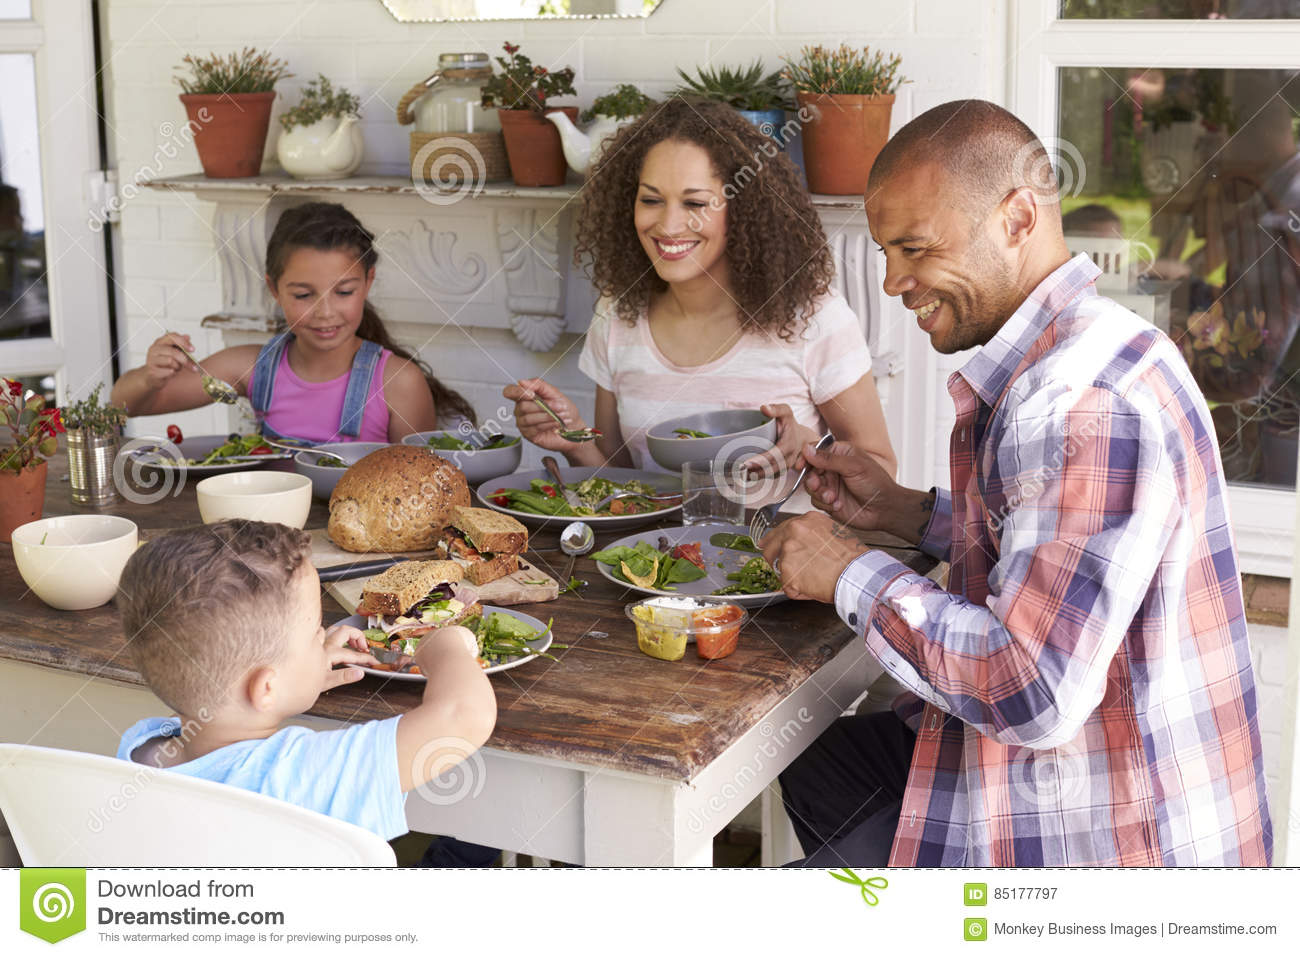 Family At Home Eating Outdoor Meal Together